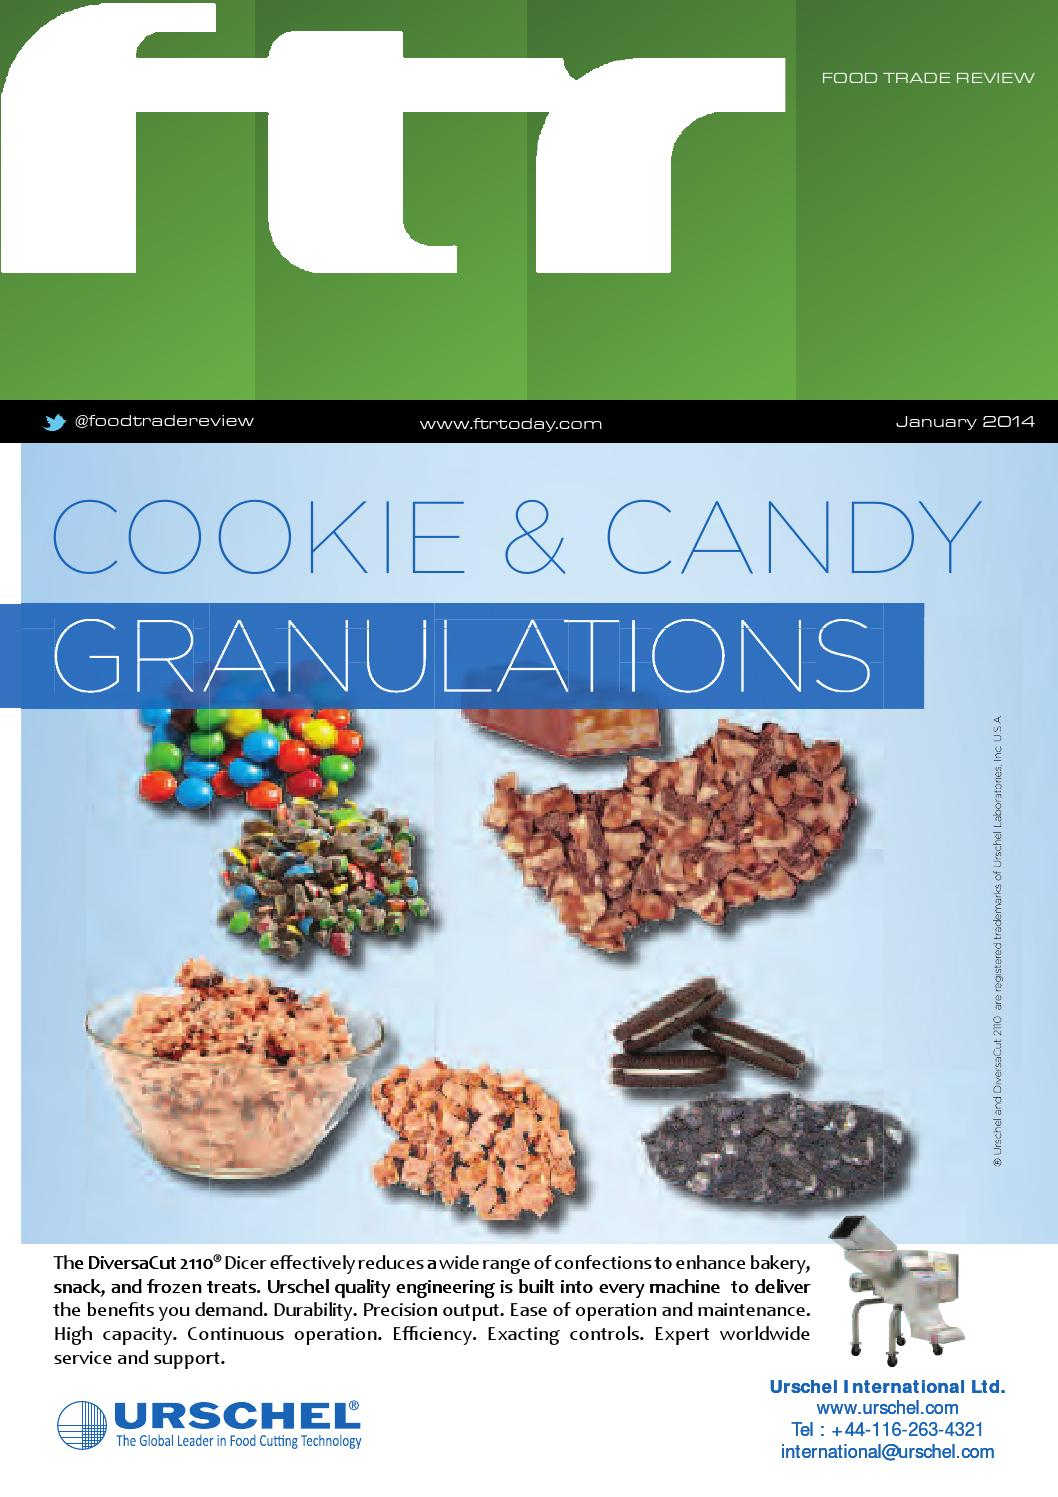 FTR_January 2014 by Food Trade Review - issuu